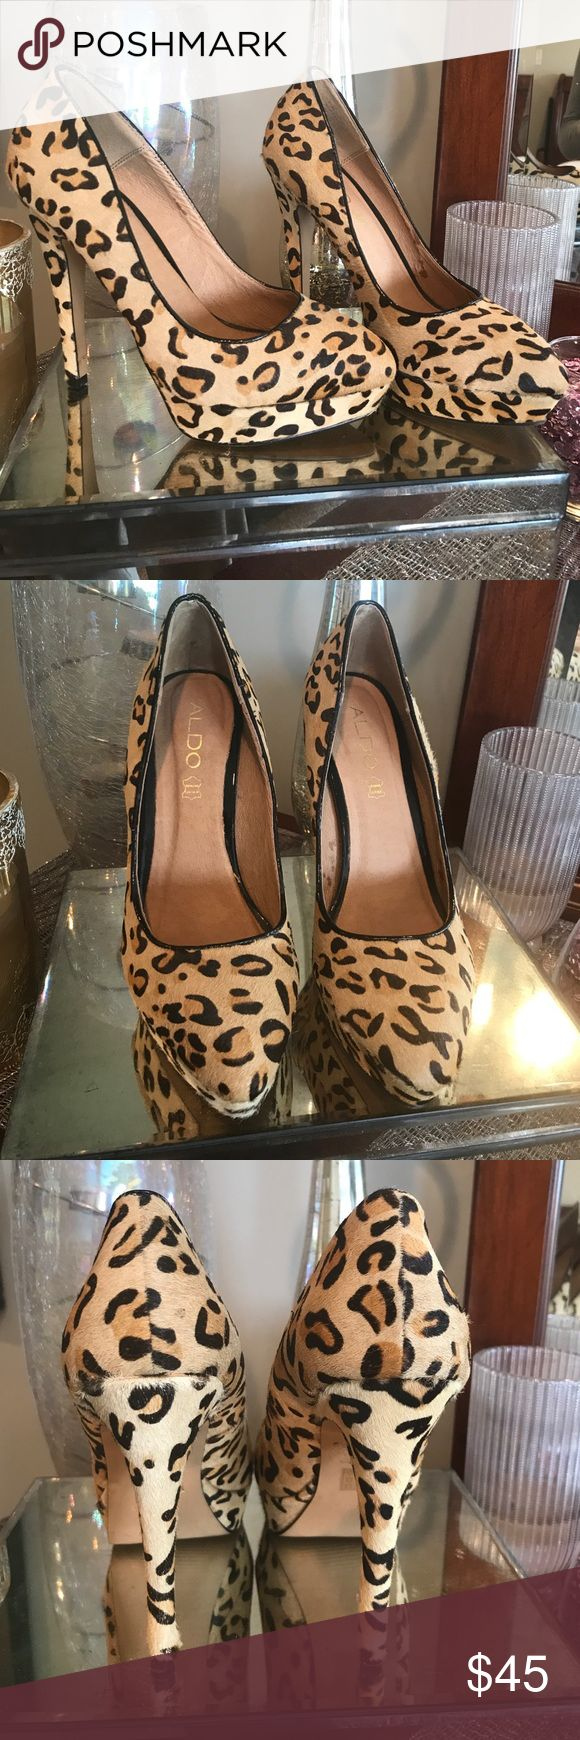 ALDO Cheetah Heel | size 8 ALDO Cheetah Heel | size 8 | worn once - like new with exception of soles (see photo) Aldo Shoes Heels